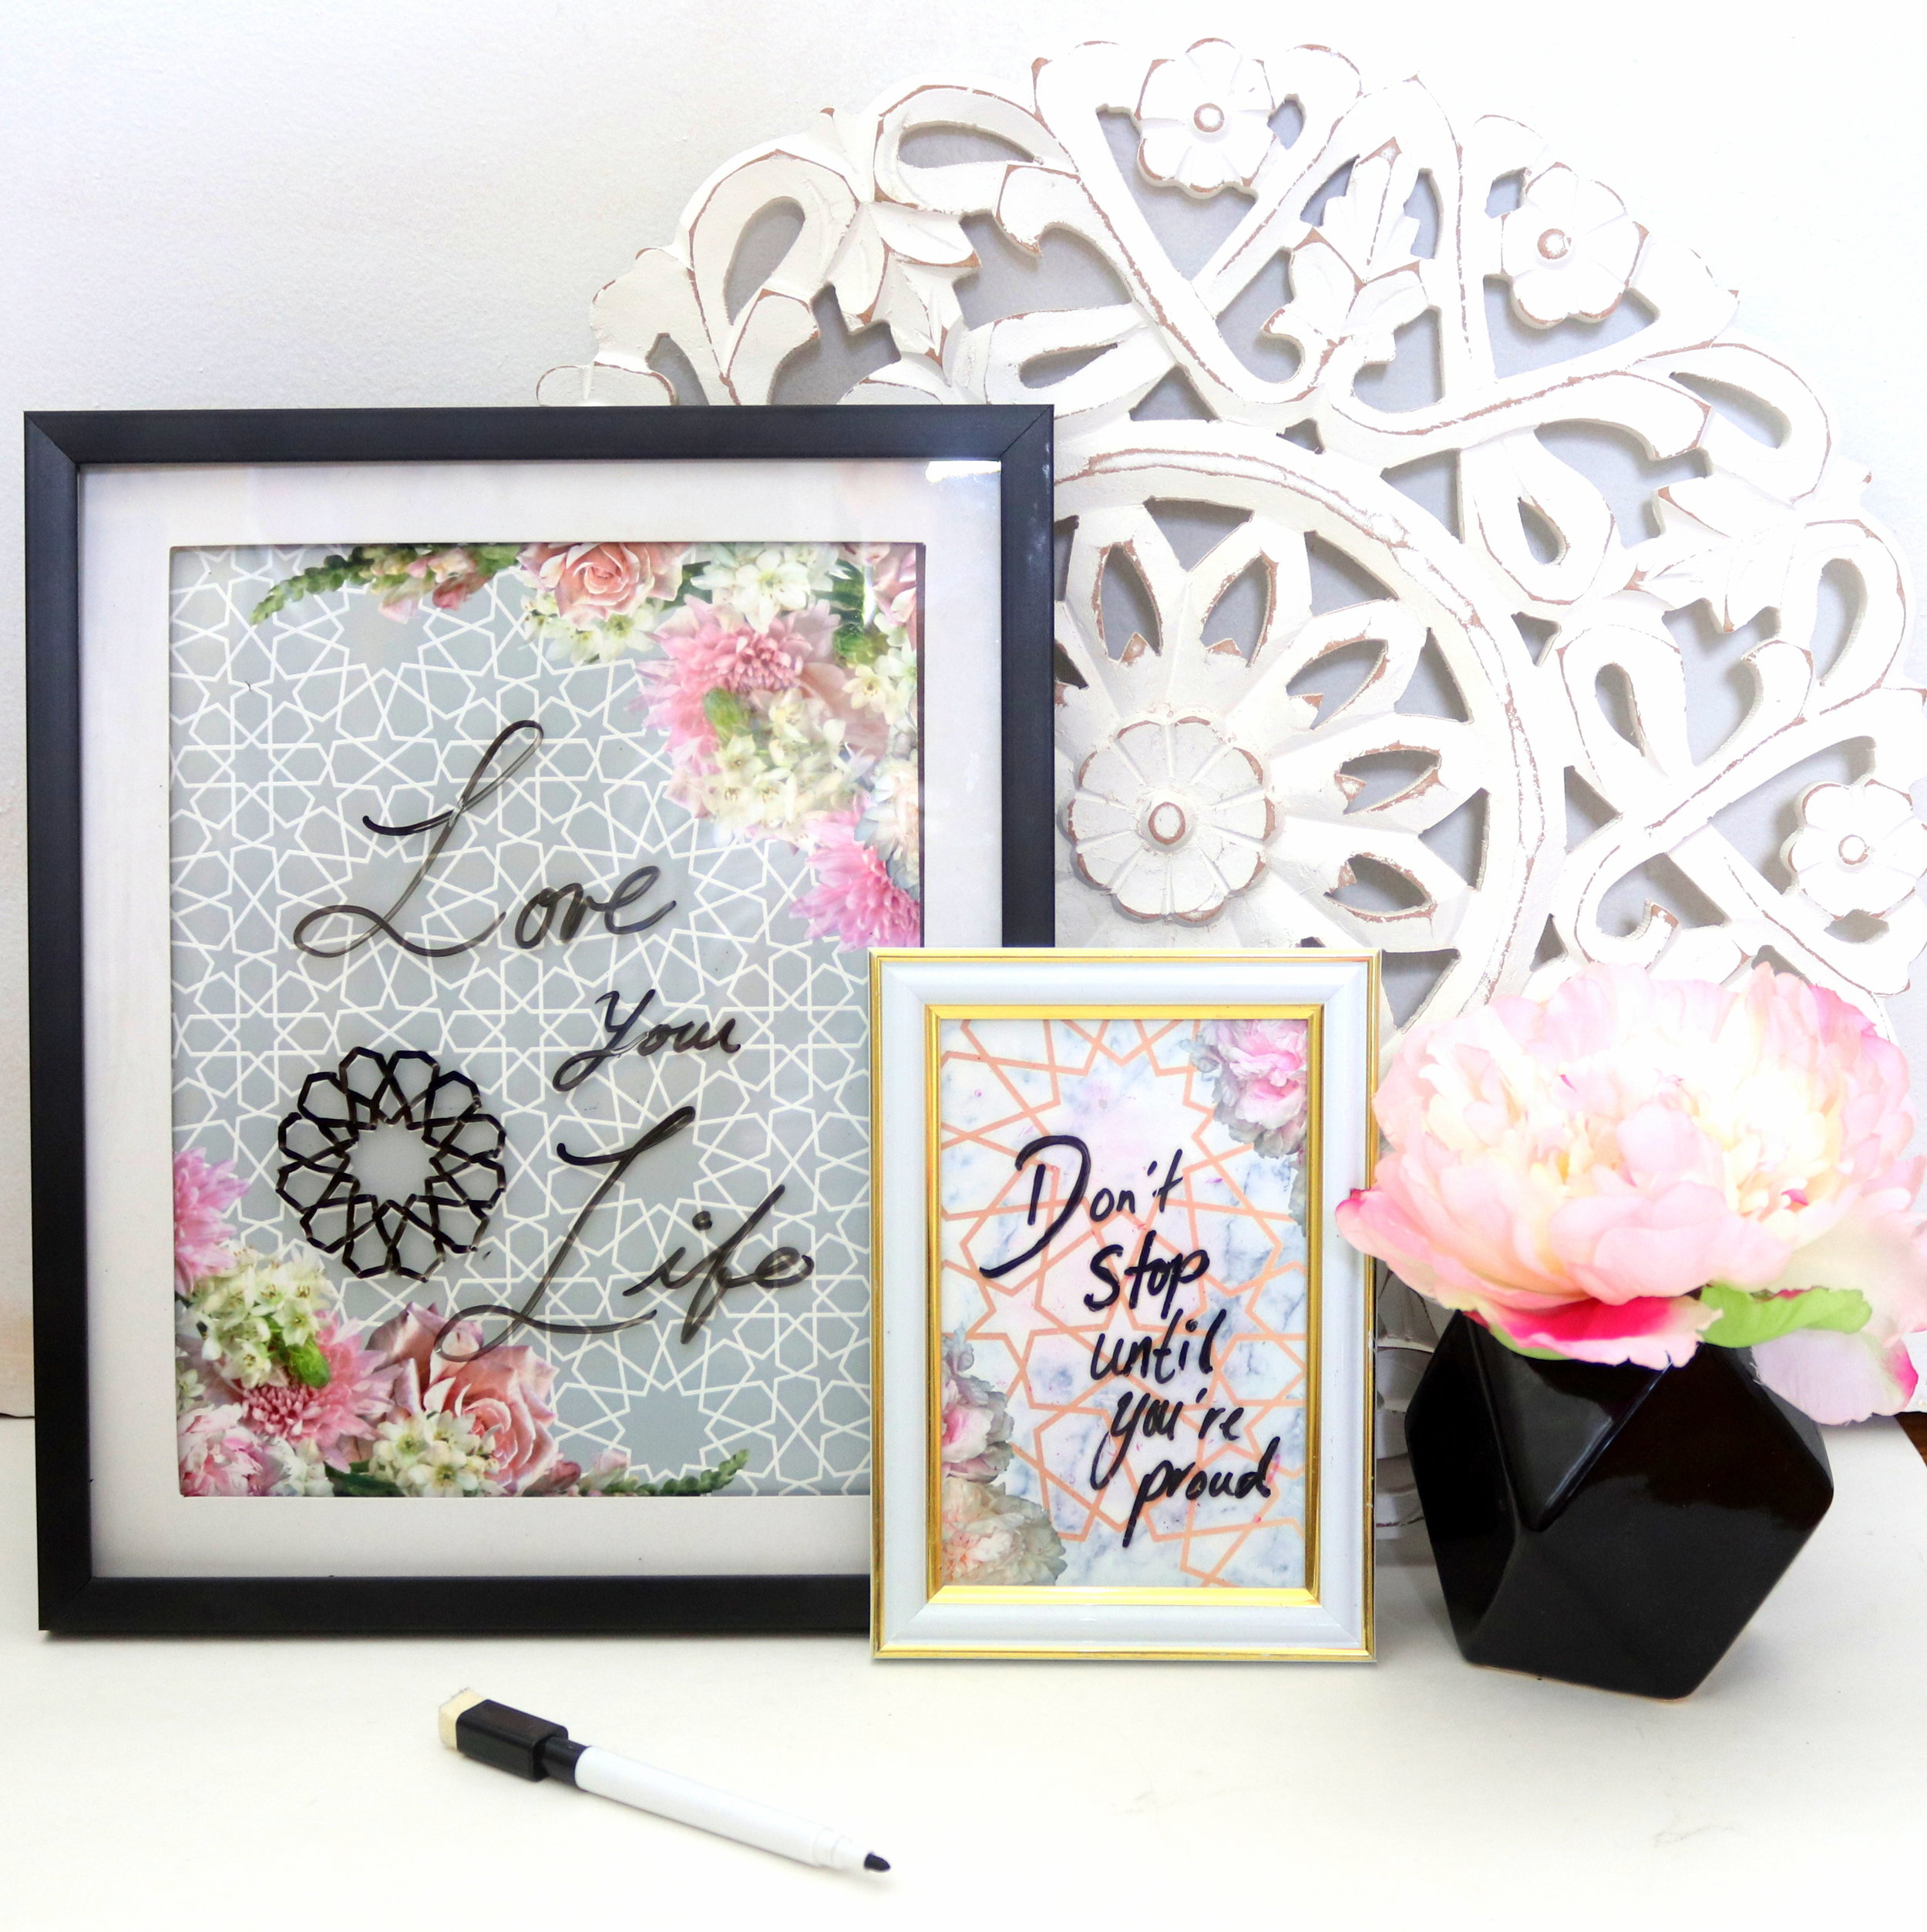 diy-inspirational wall art- karama by hoda